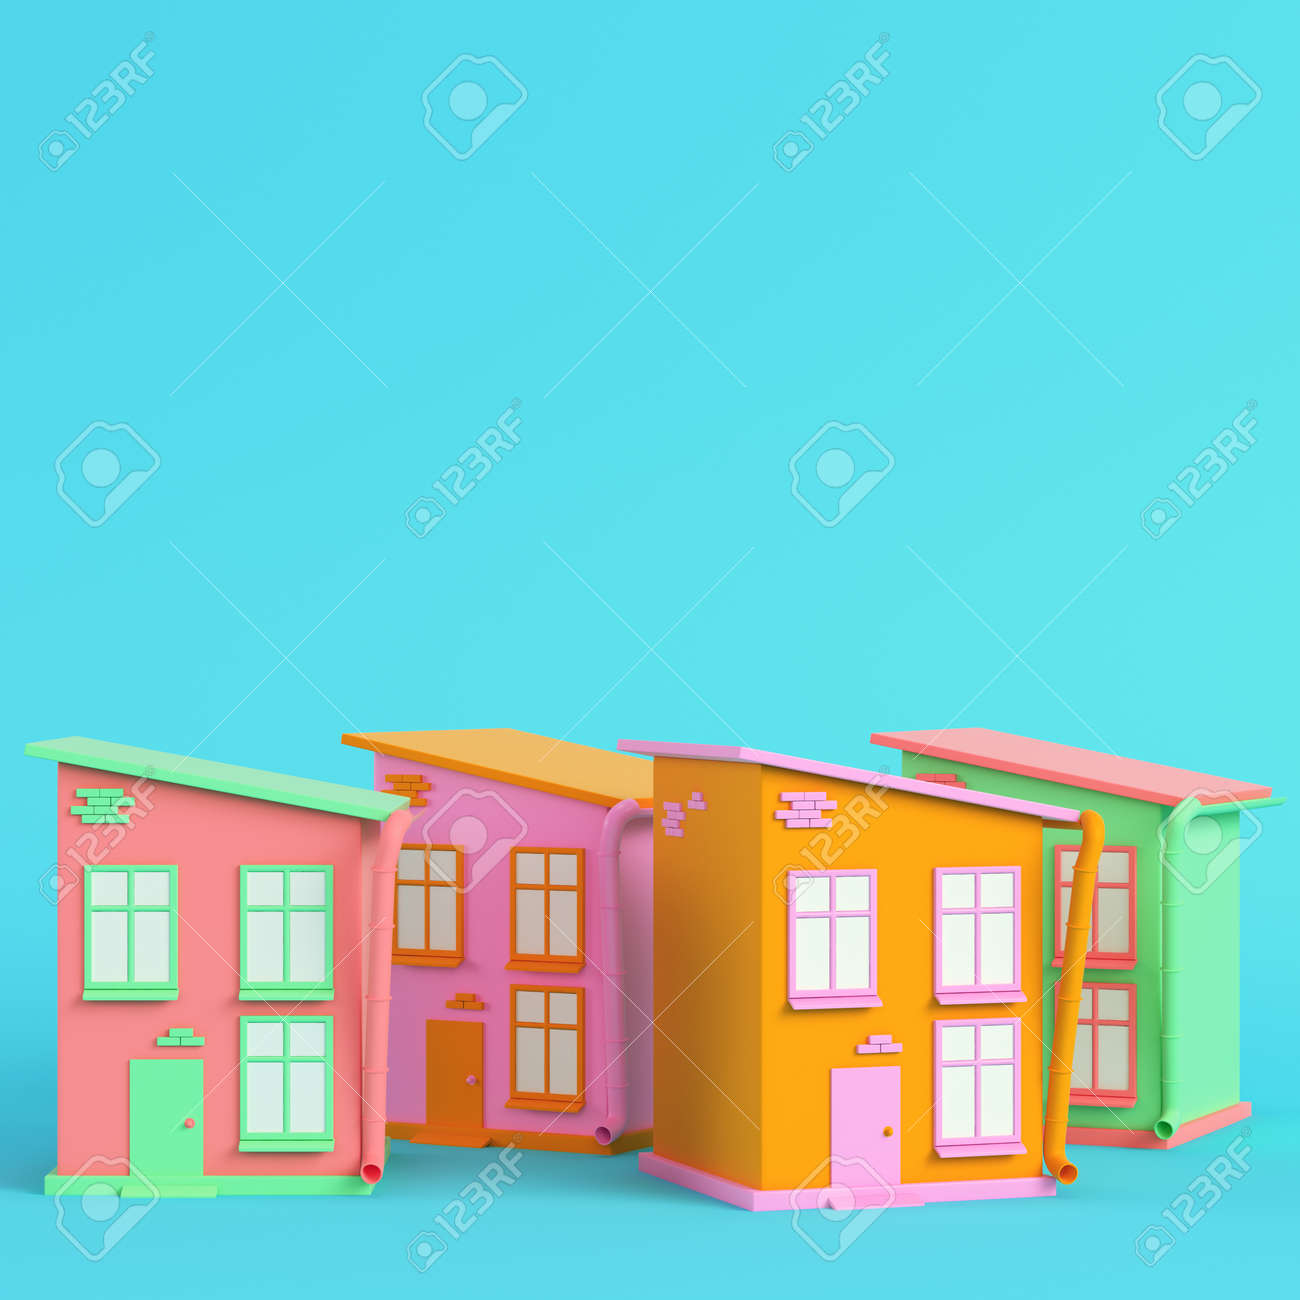 Colorful cartoon styled houses on bright blue background in pastel colors. Minimalism concept. 3d render - 170609750